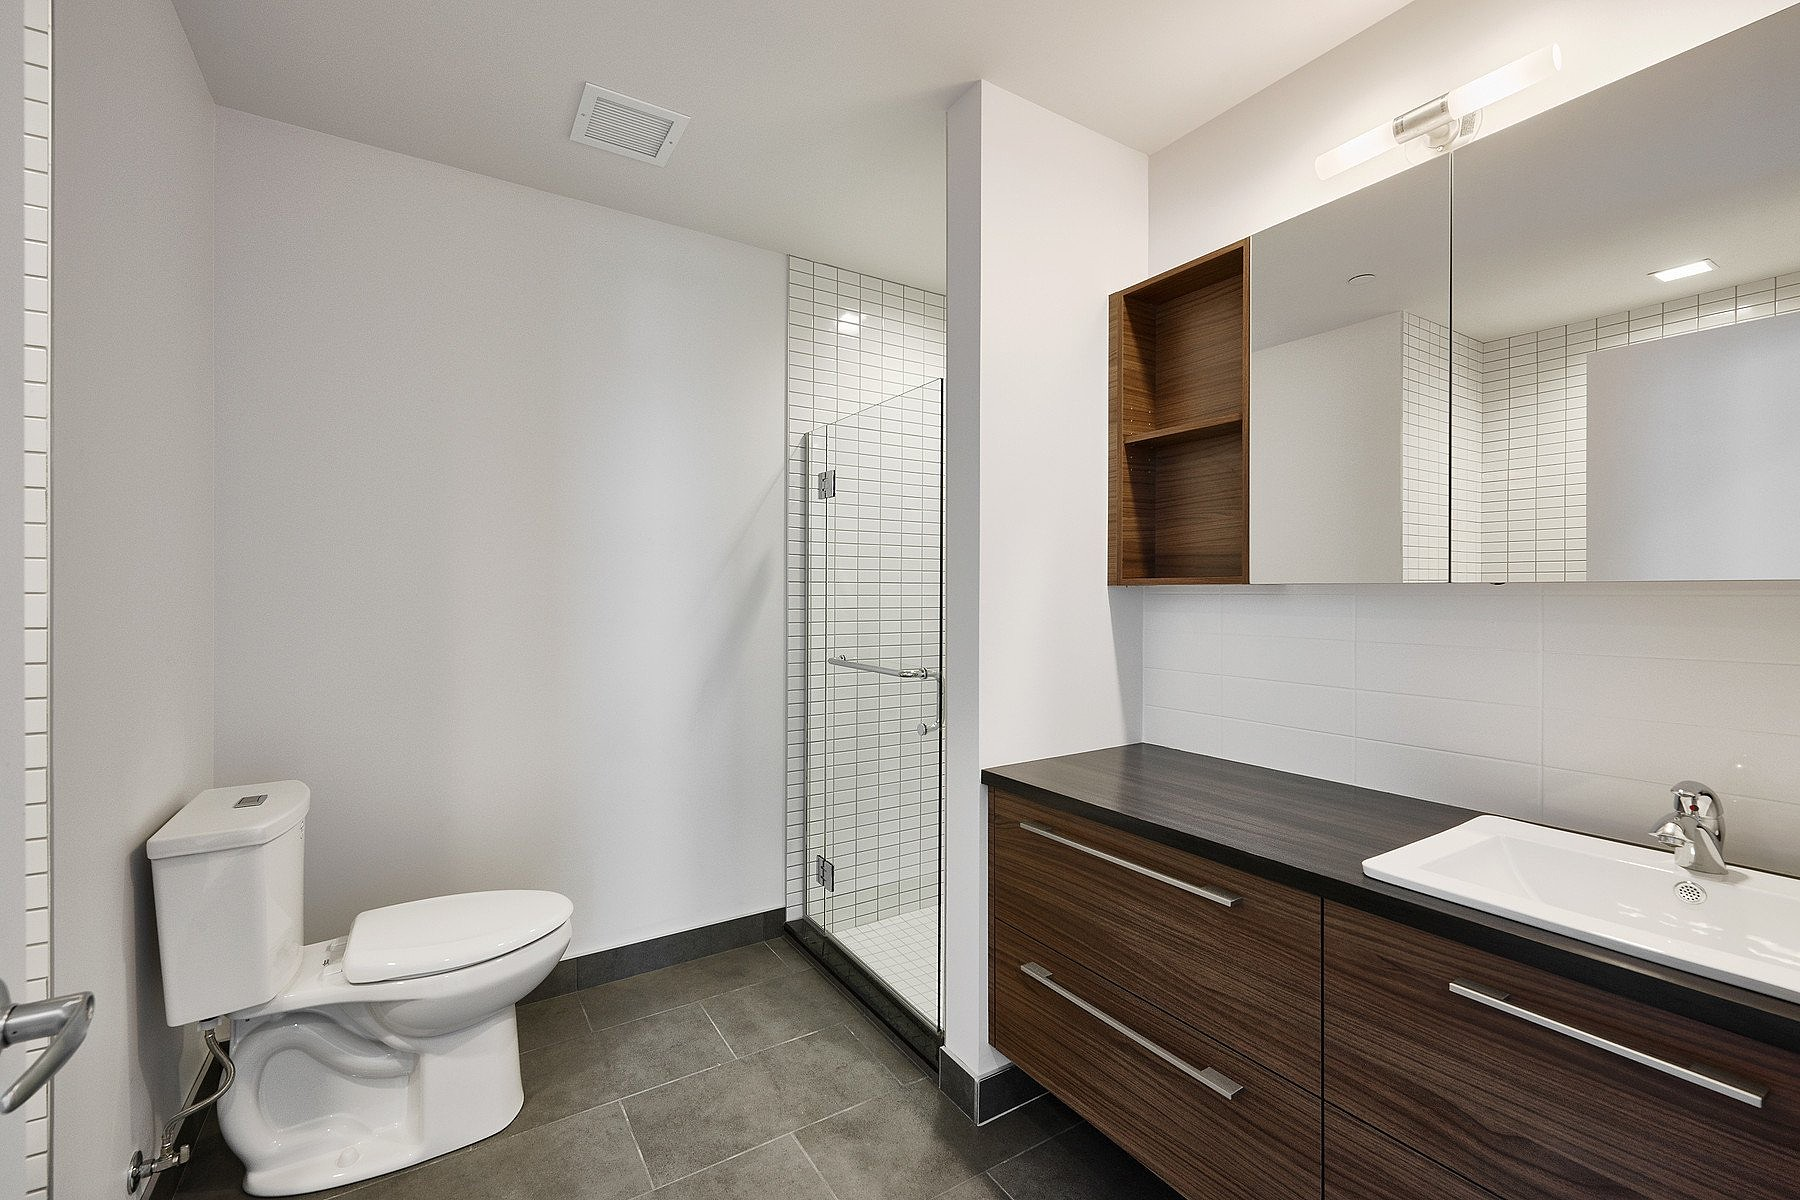 Additional photo for property listing at La Cité, Capitale-Nationale 775 Av. Ernest-Gagnon, Apt. 505 Other Quebec, Quebec G1S0B8 Canada